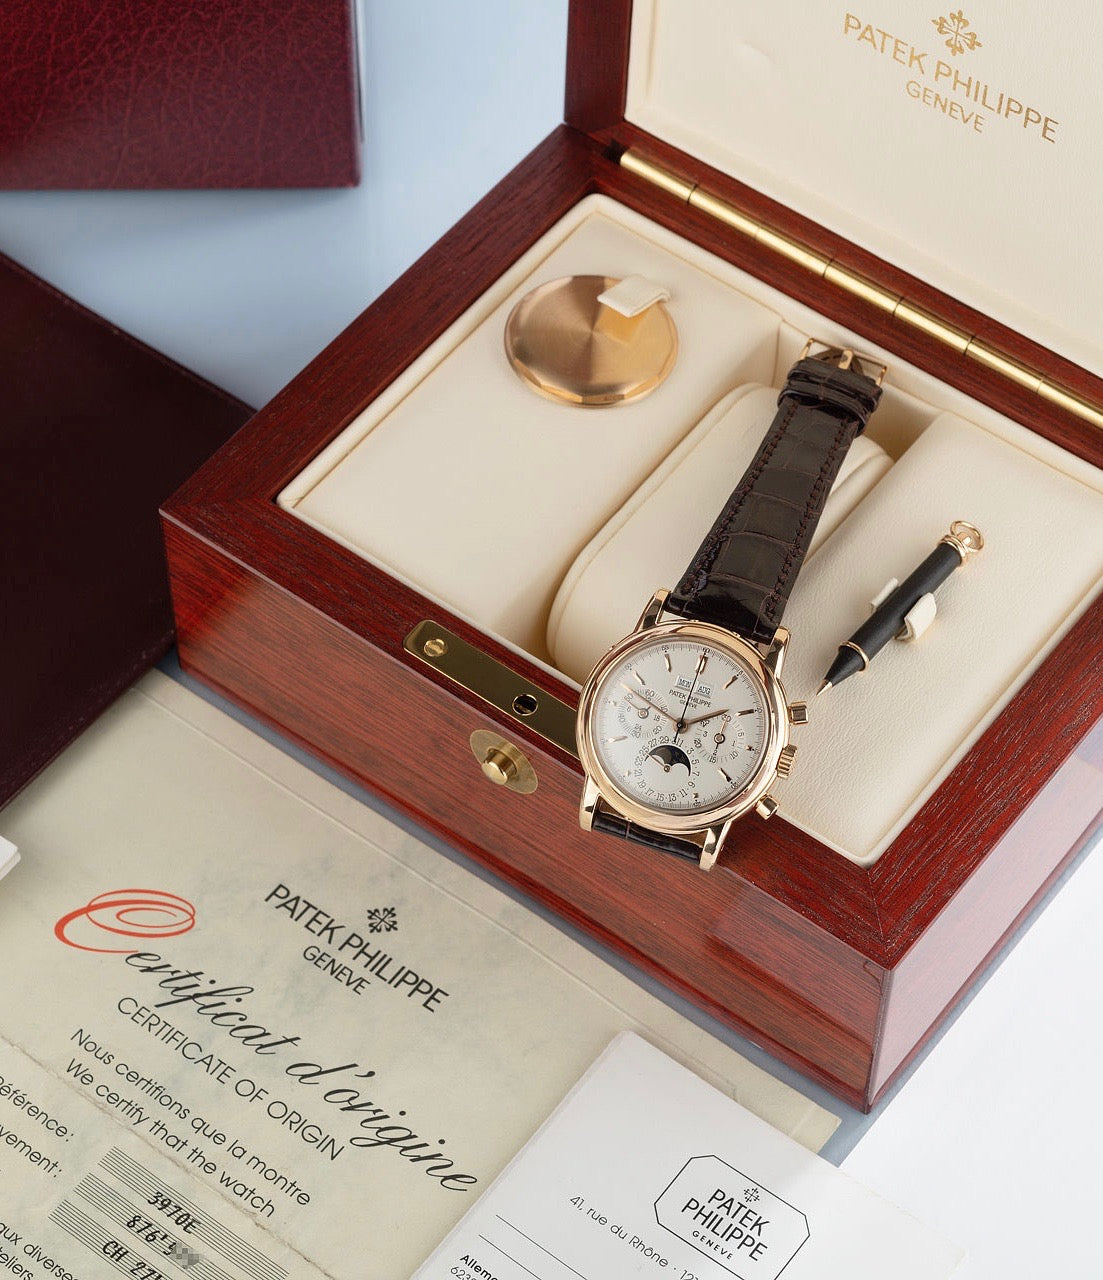 Patek Philippe ref. 3970EJ with original box displaying full set